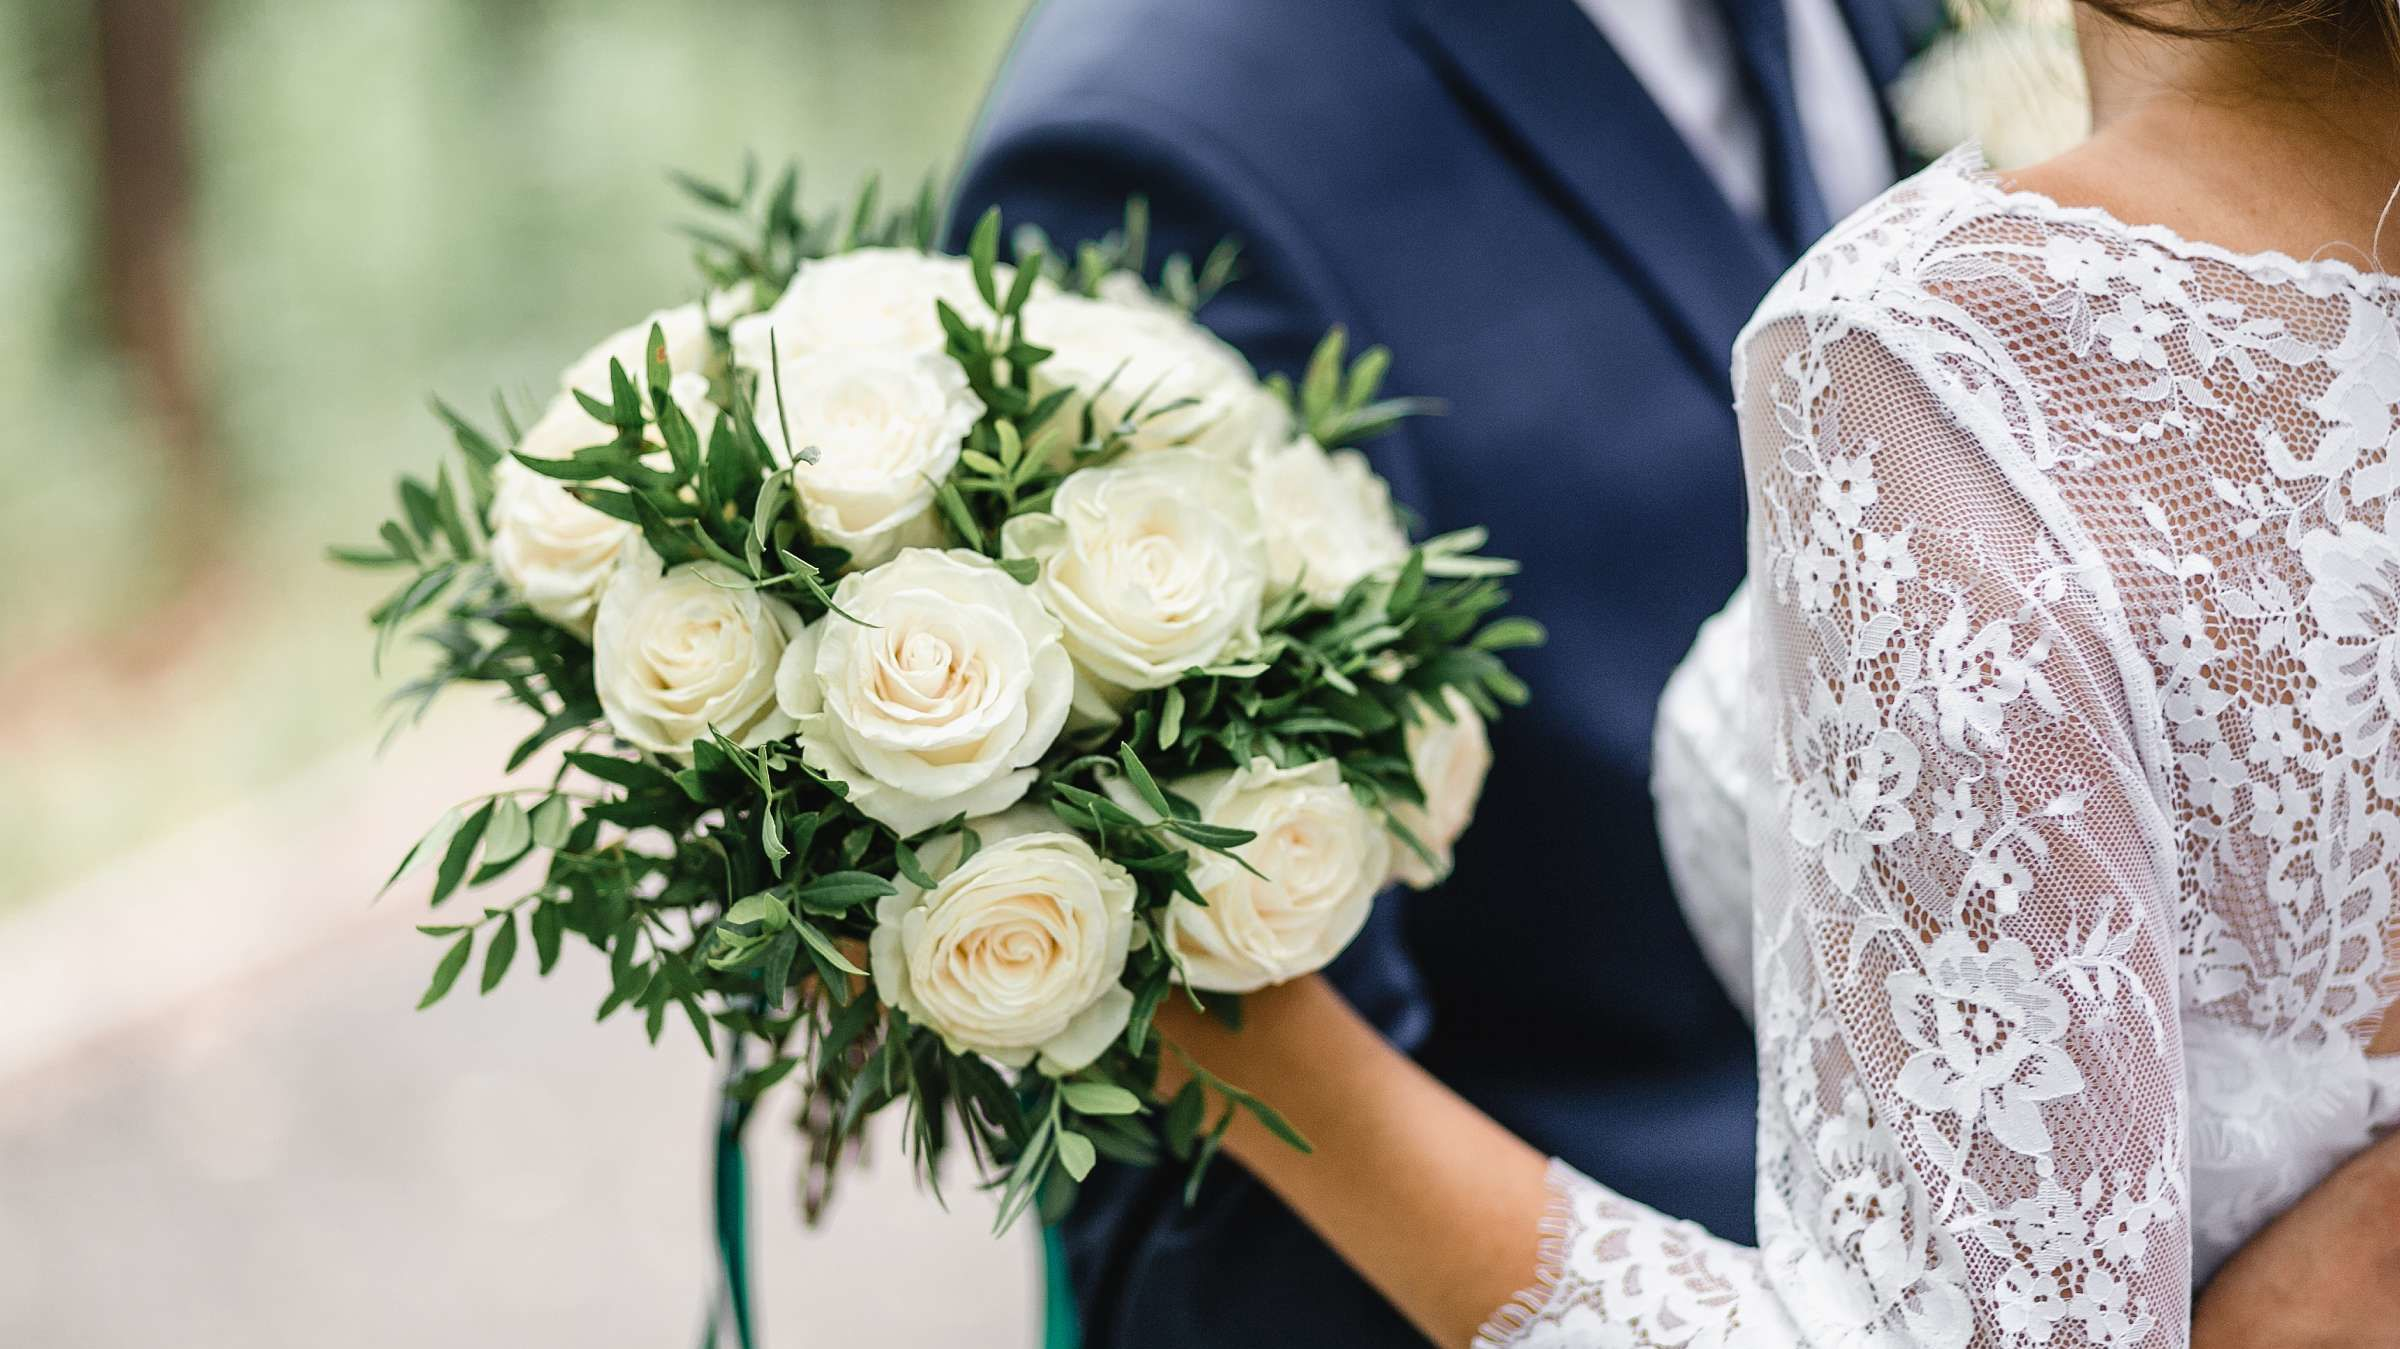 Why Do Brides Carry Bouquets?